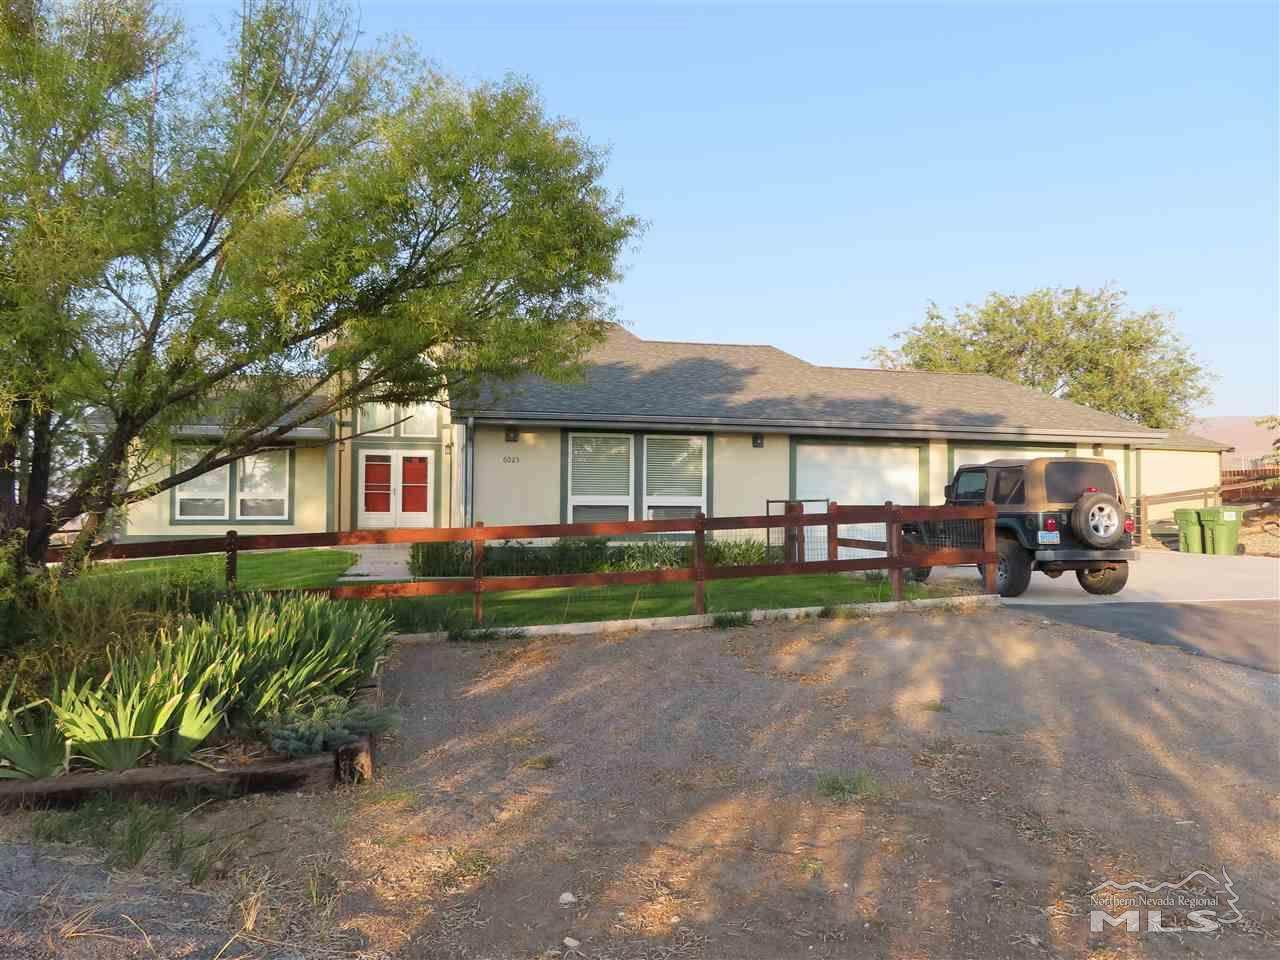 6025 Water Canyon Rd - Photo 1